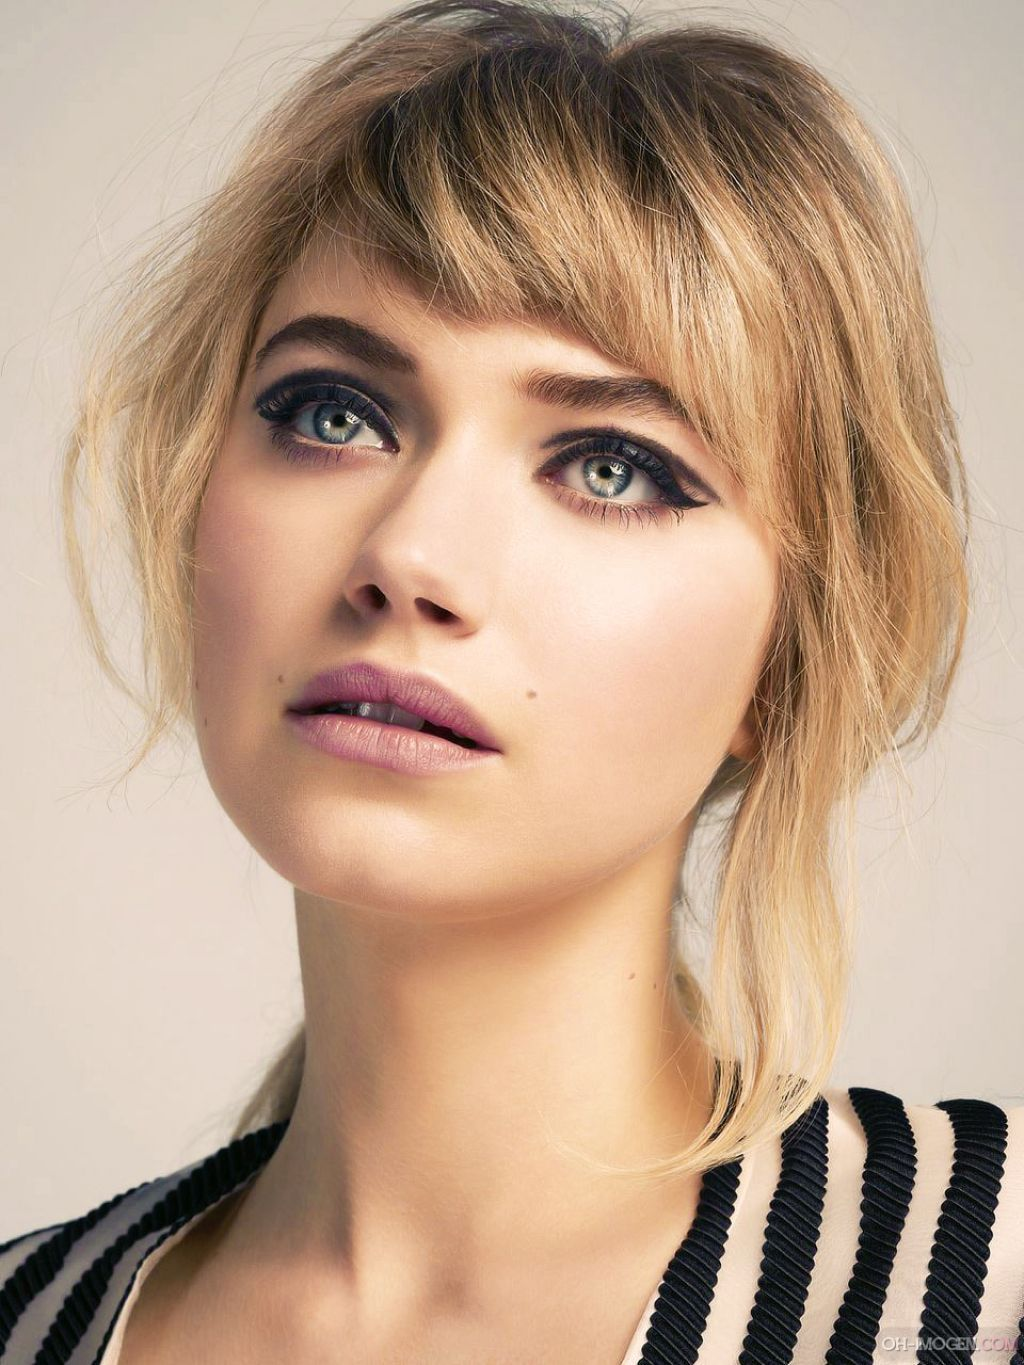 Imogen Poots Legs Imogen Poots Photoshoot For Untitled Magazine Spring Summer 2014